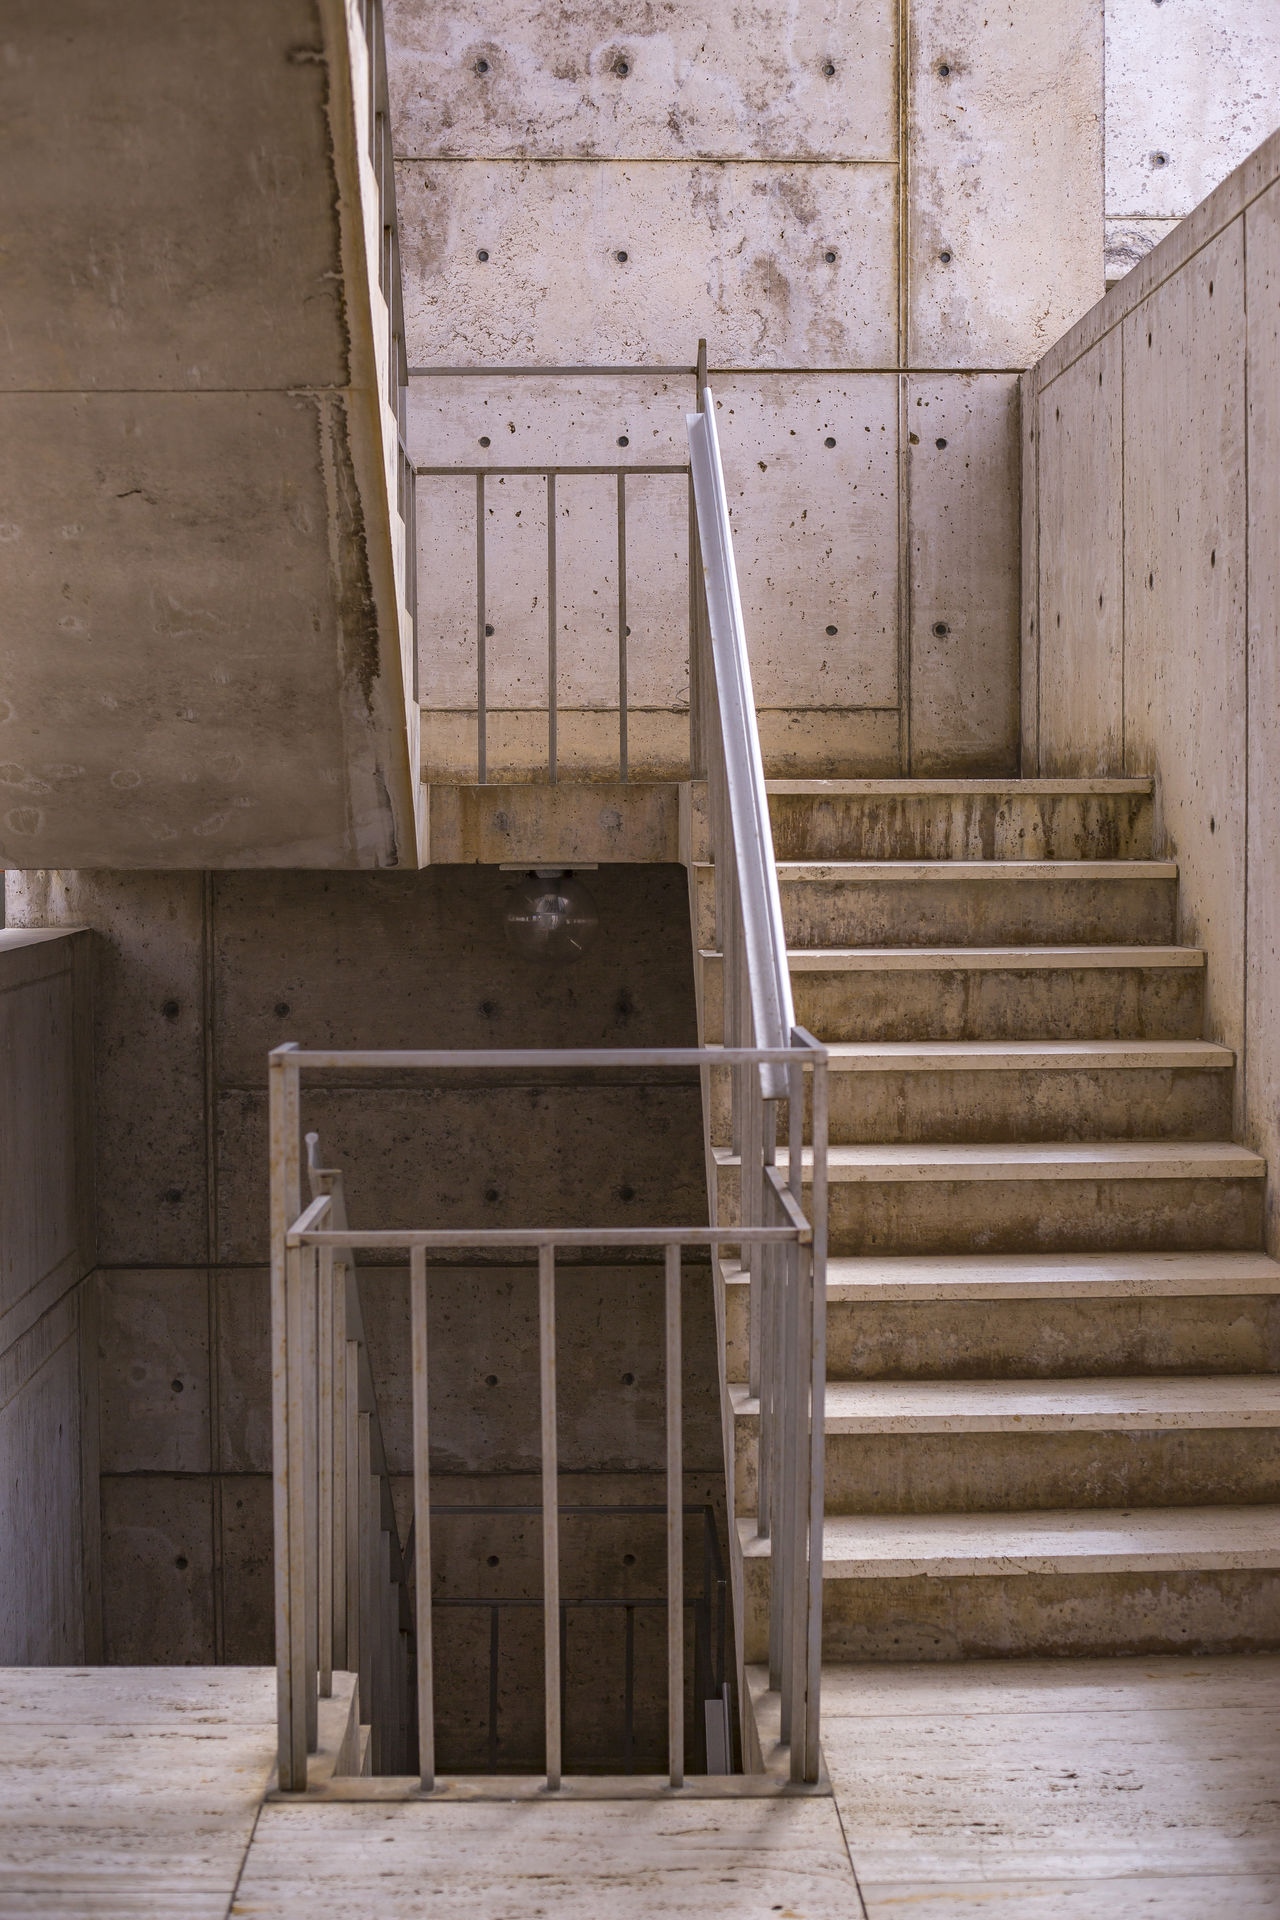 Abandoned Architecture Basement Built Structure Cali California Day Domestic Room Education Home Interior Indoors  No People Salk Institute  Southern California Staircase Steps Steps And Staircases